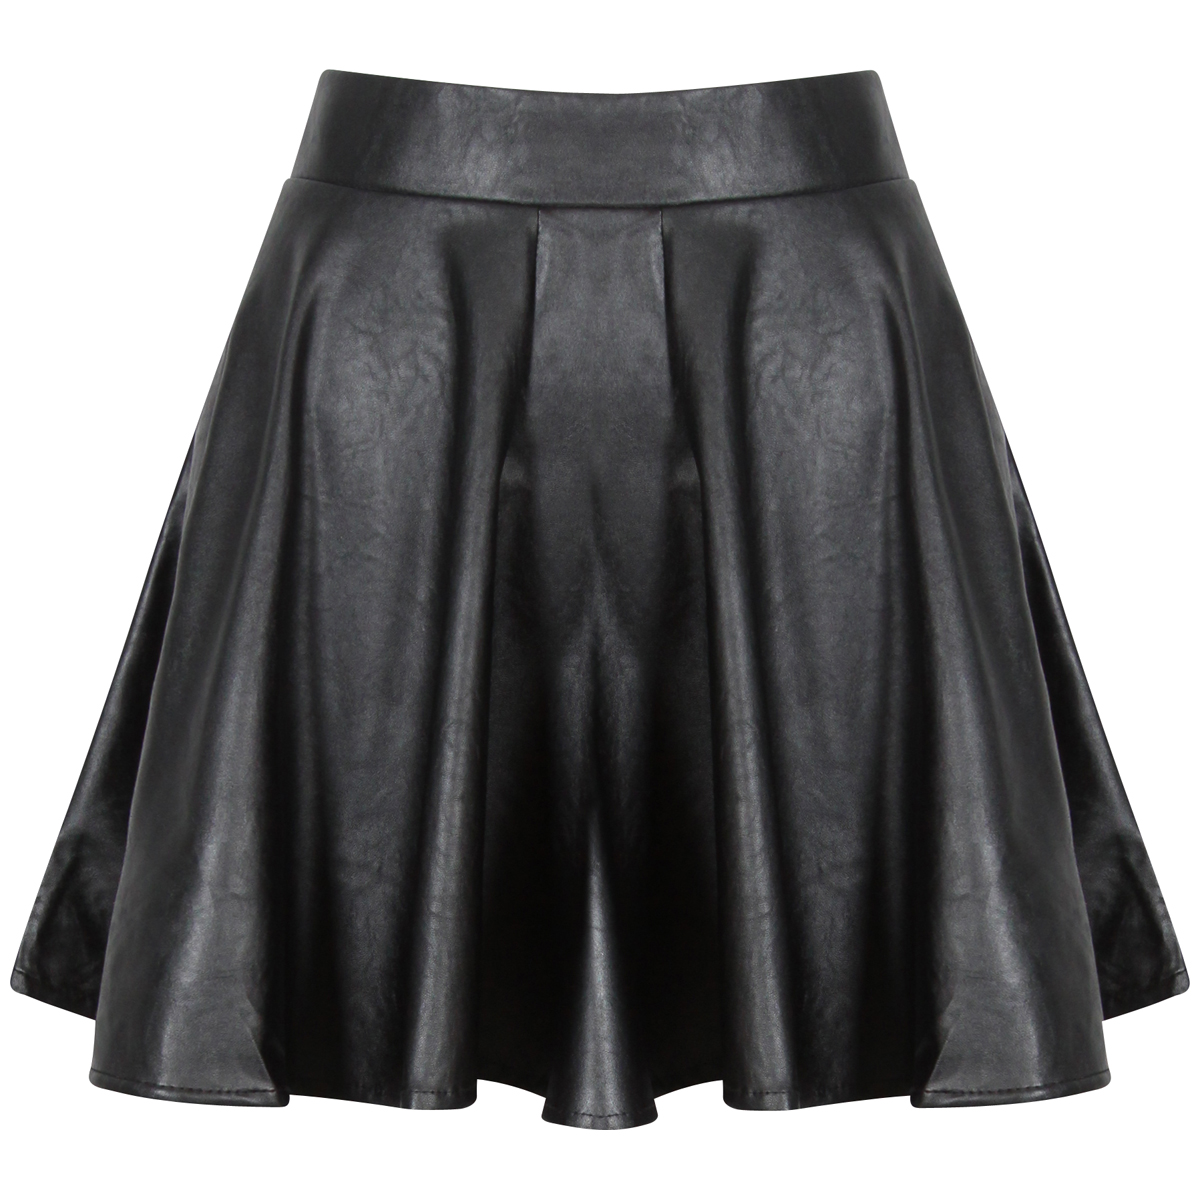 Black Faux Leather Skater Skirt ($) liked on Polyvore featuring skirts, flared skirt, black skirt, skater skirt, vegan leather skirt and fake leather skirt Find this Pin and more on My Polyvore Finds by Arantxa Melendez.